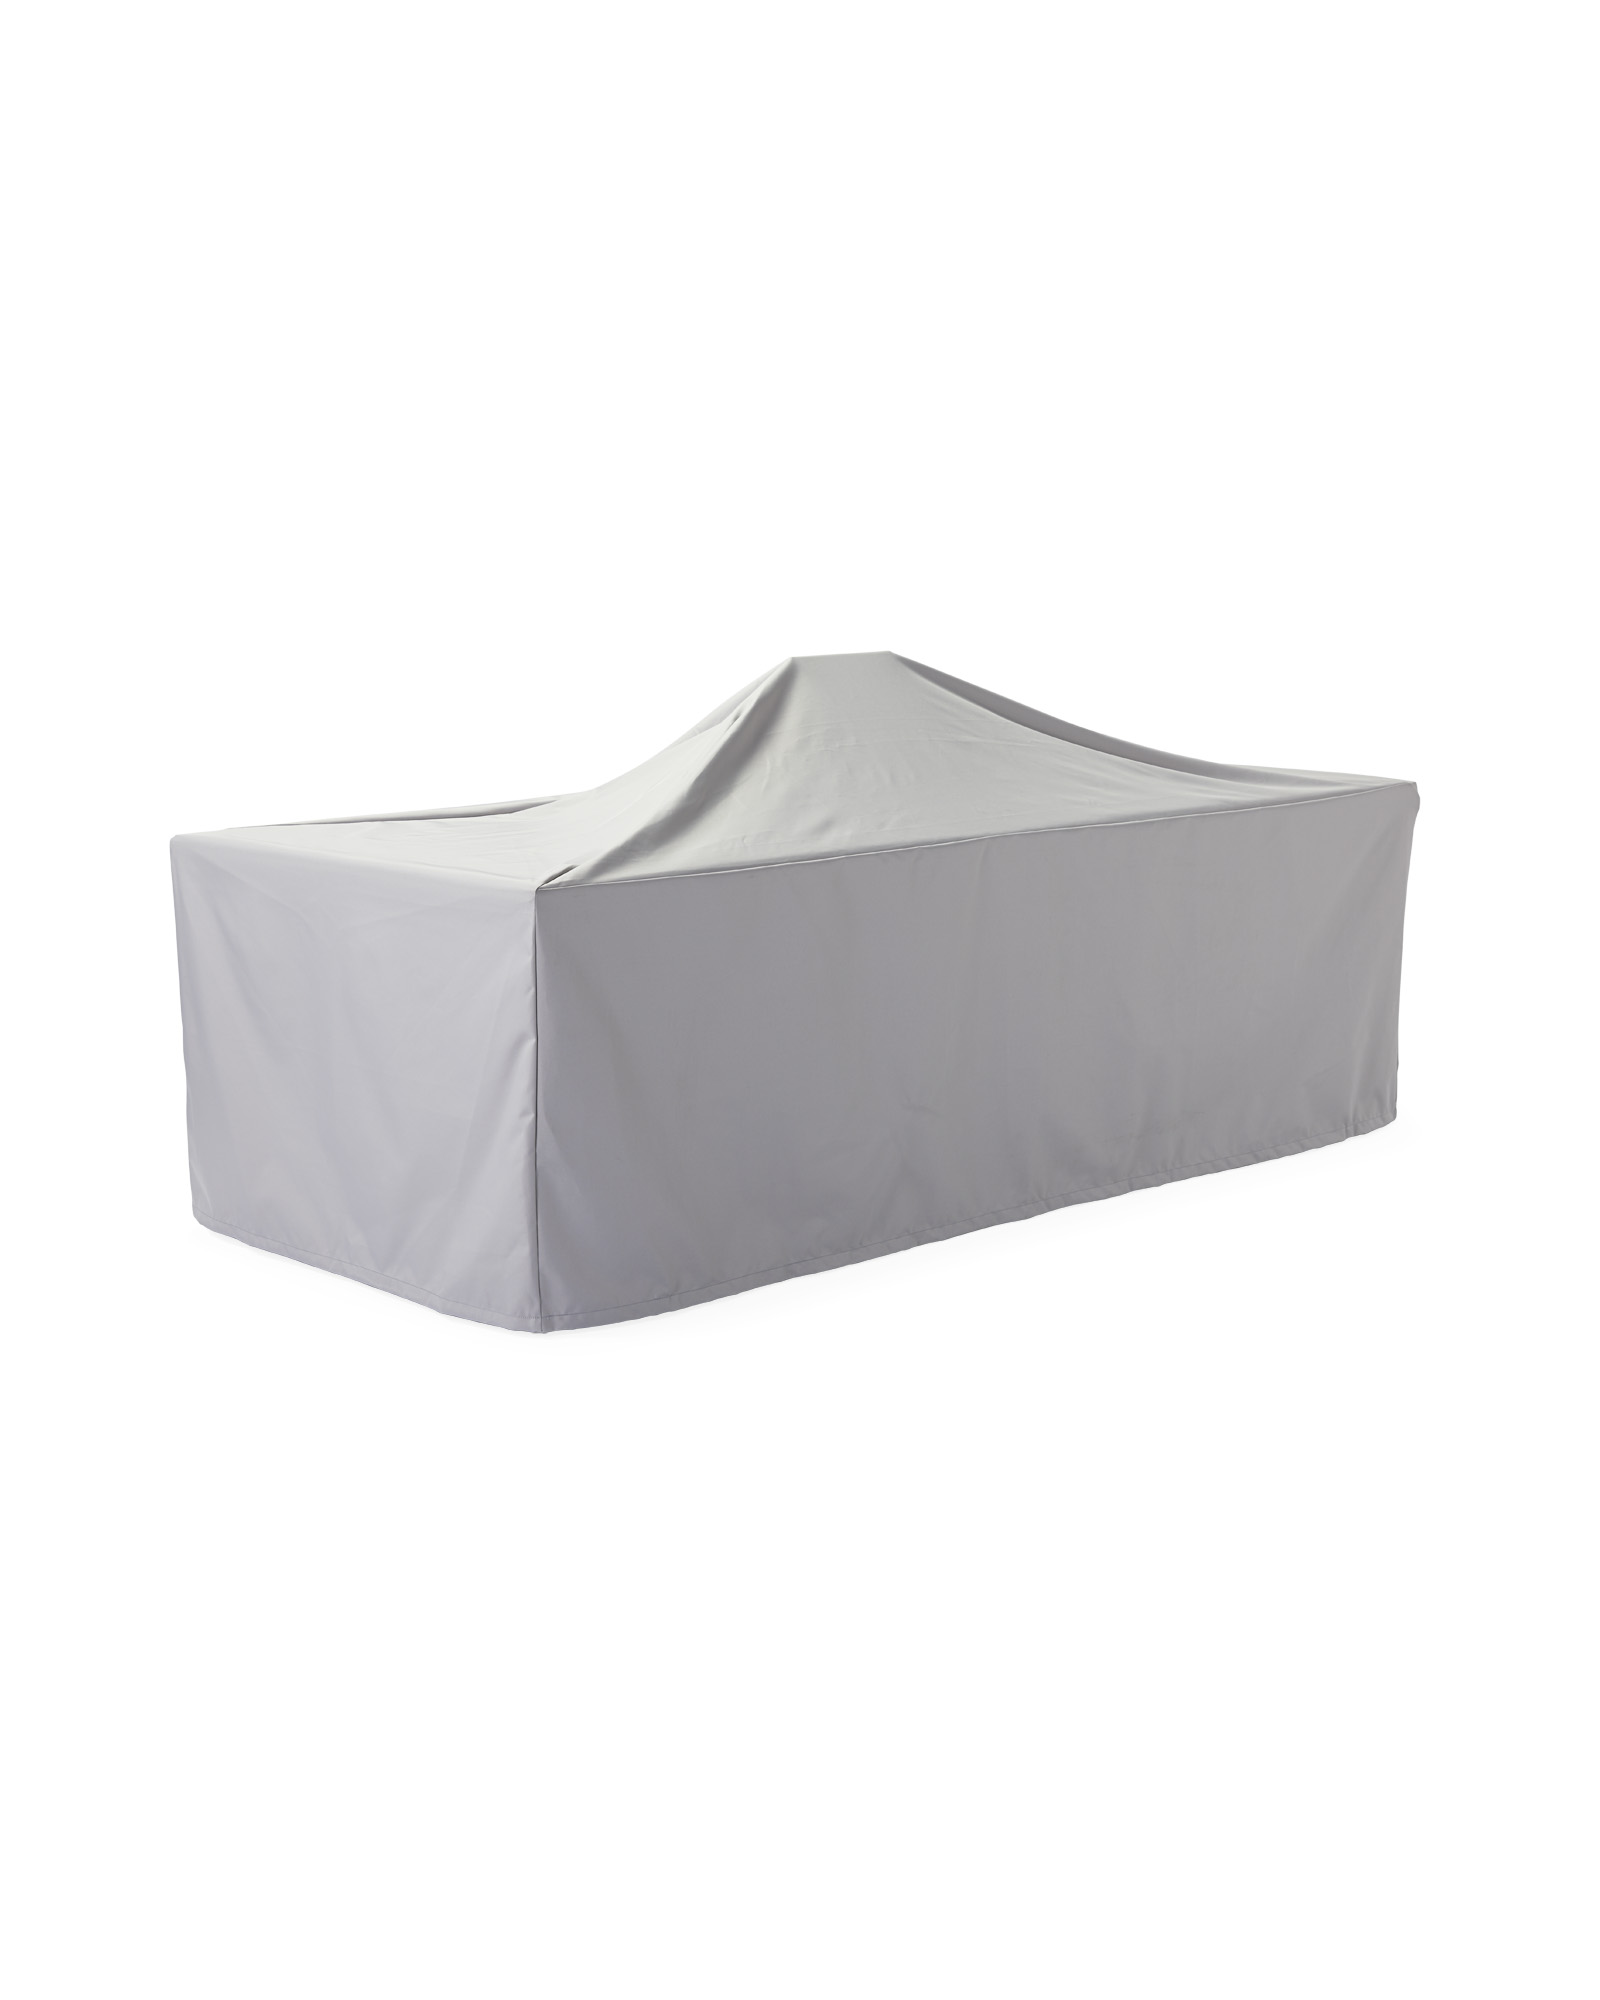 Terrace Rectangular Dining Table Outdoor Cover,